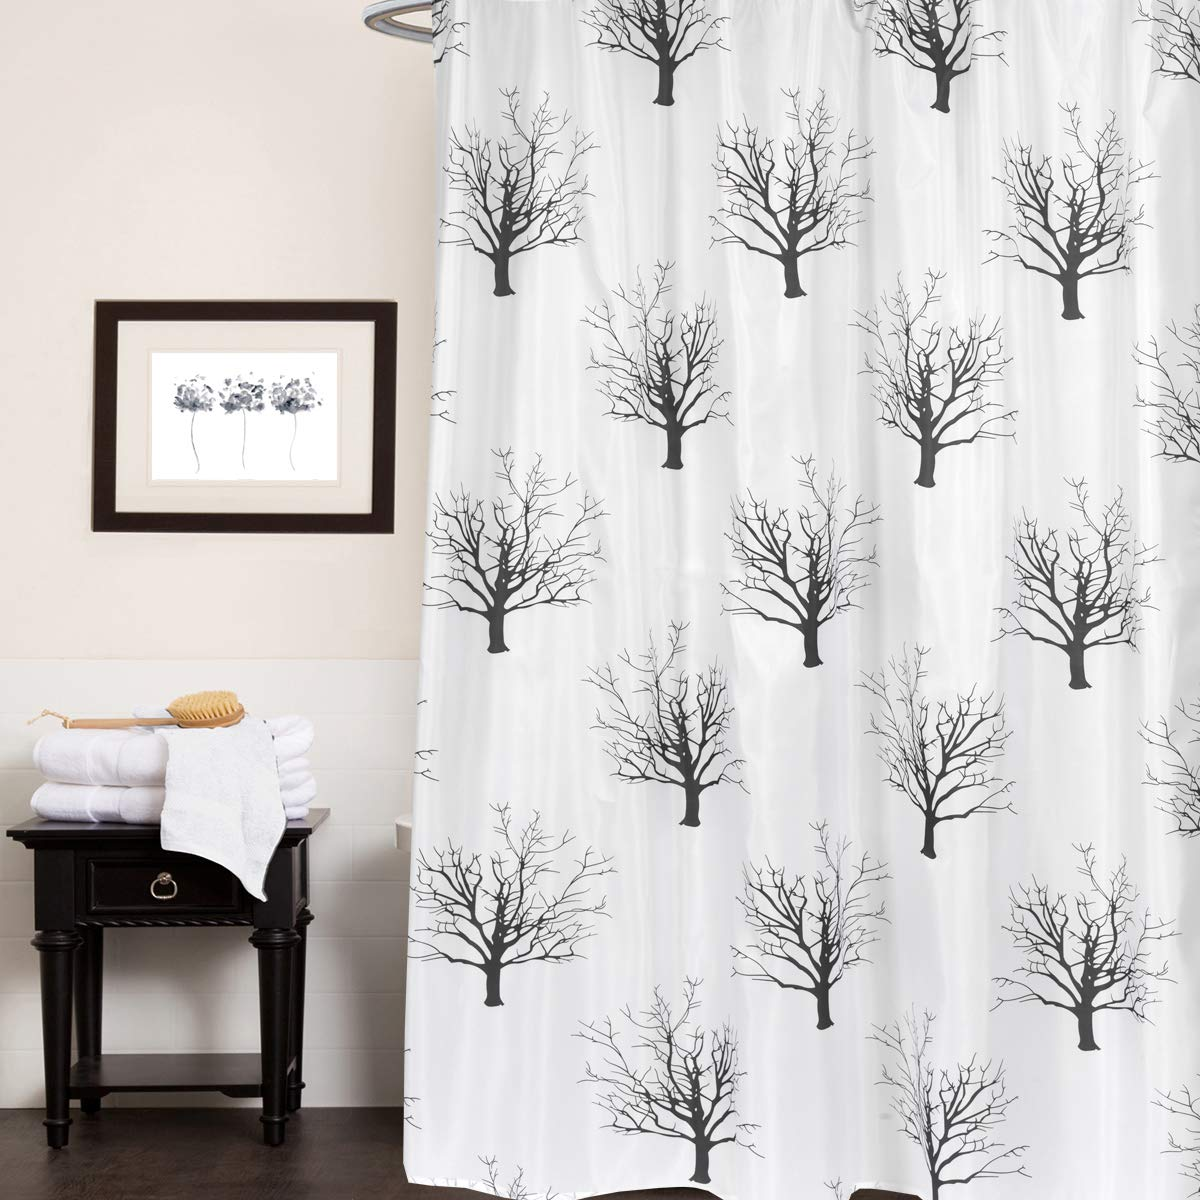 Fun Designs for Shower Stalls /& Bathtubs Extra Long Multi Anti-Mildew Material Machine Washable Fabric Water Resistant Easy Hang Sweet Home Collection Curtain